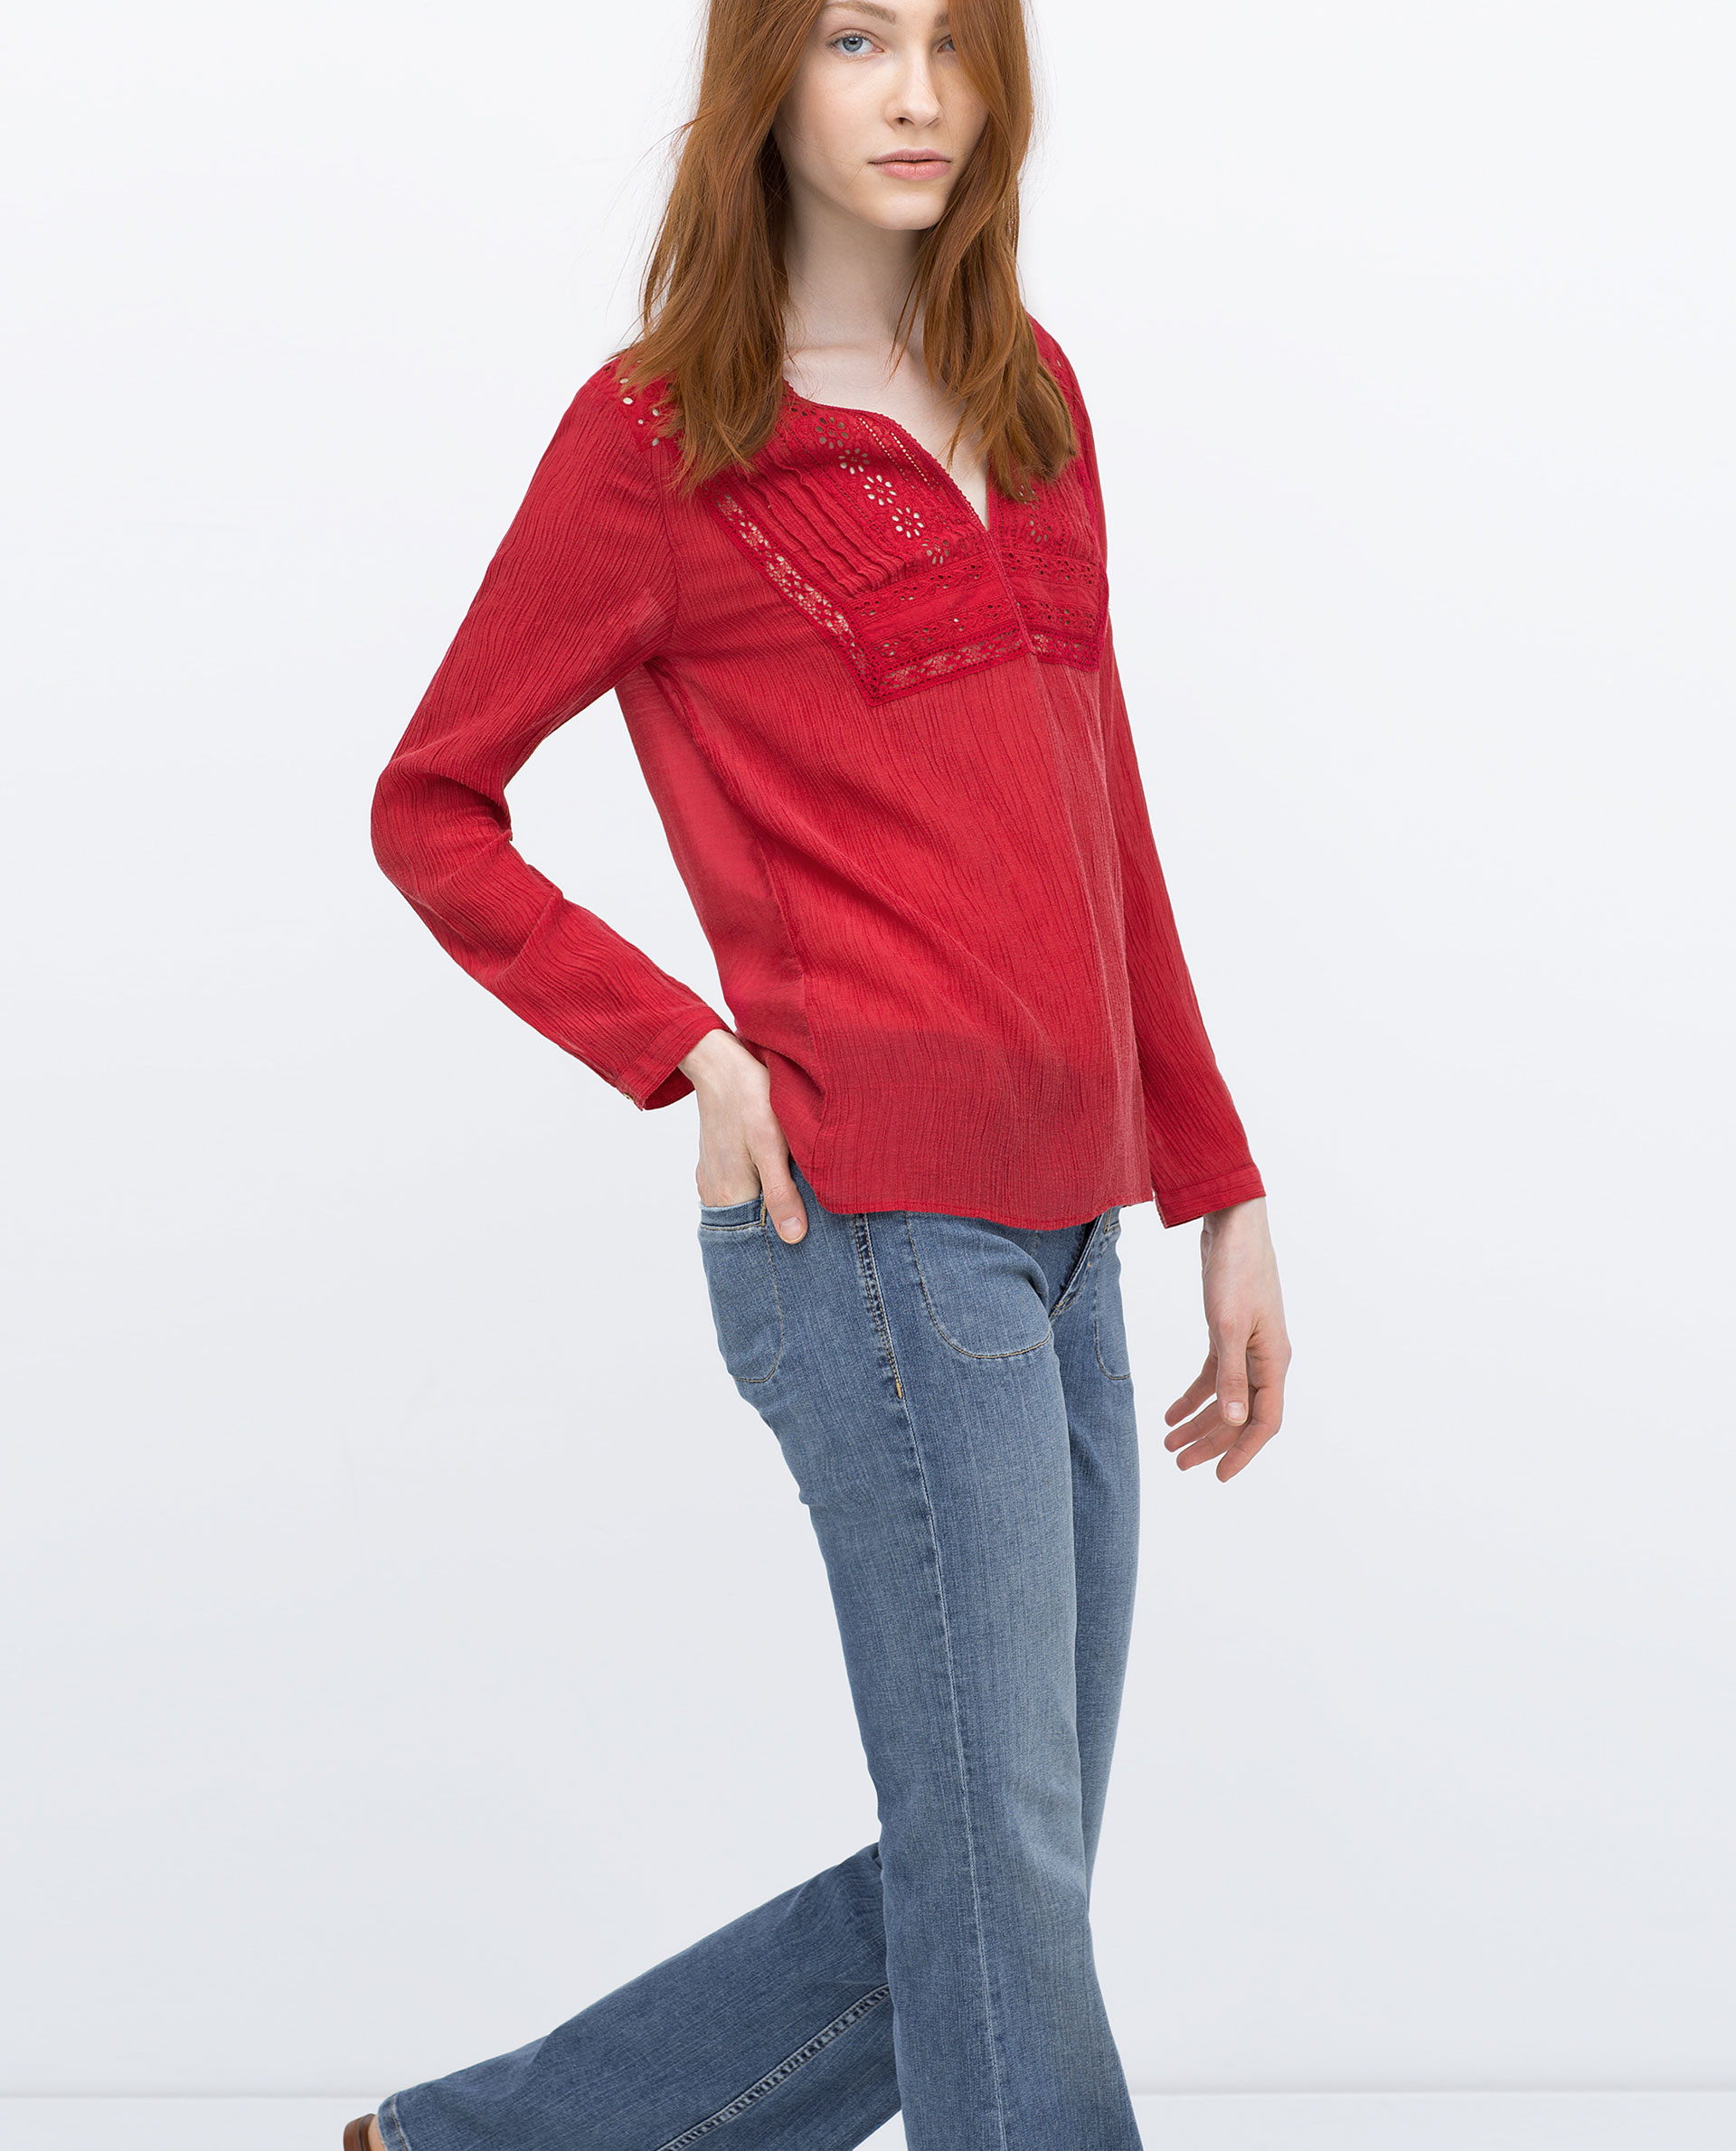 Zara cheesecloth shirt with embroidered bib front